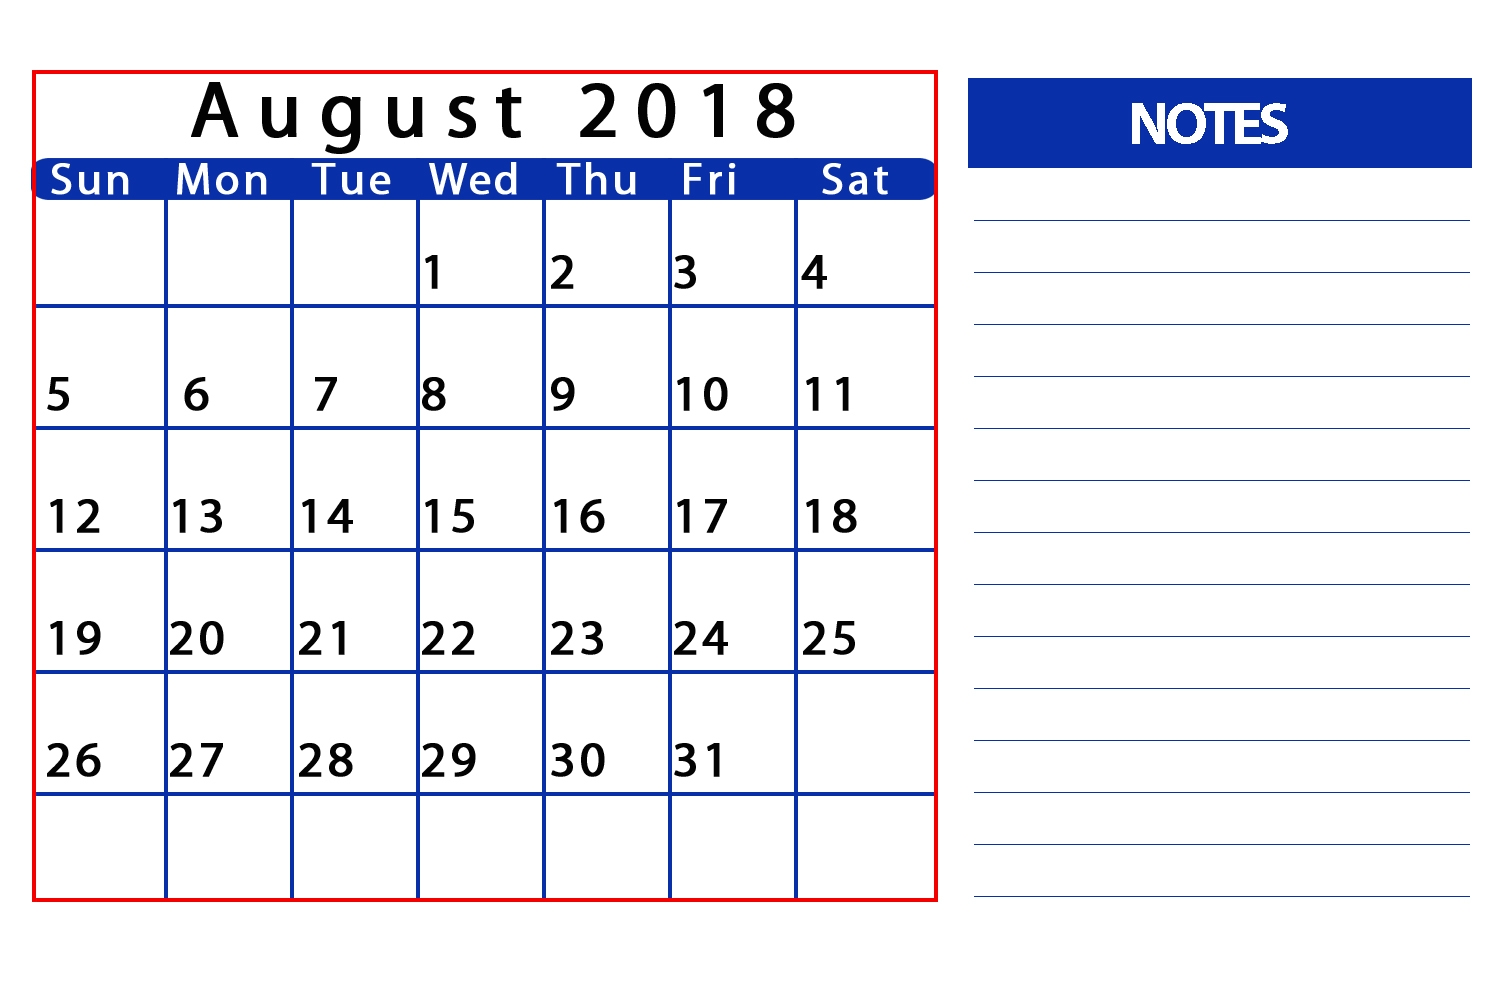 august 2018 calendar with holidays india monthly 2018 Calendar August Through December erdferdf